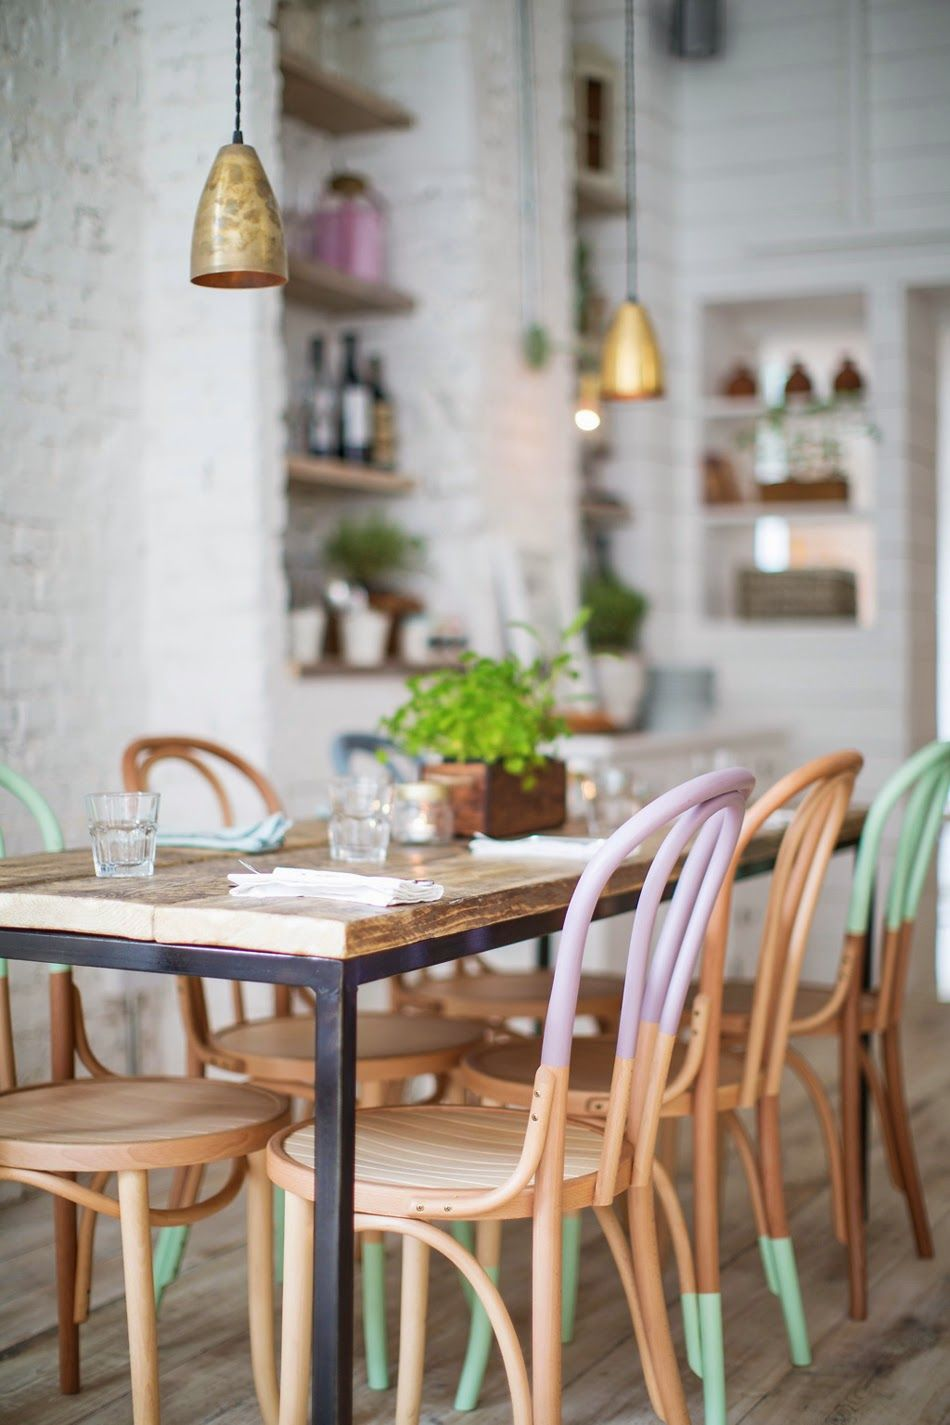 Dipped pastel dining chairs